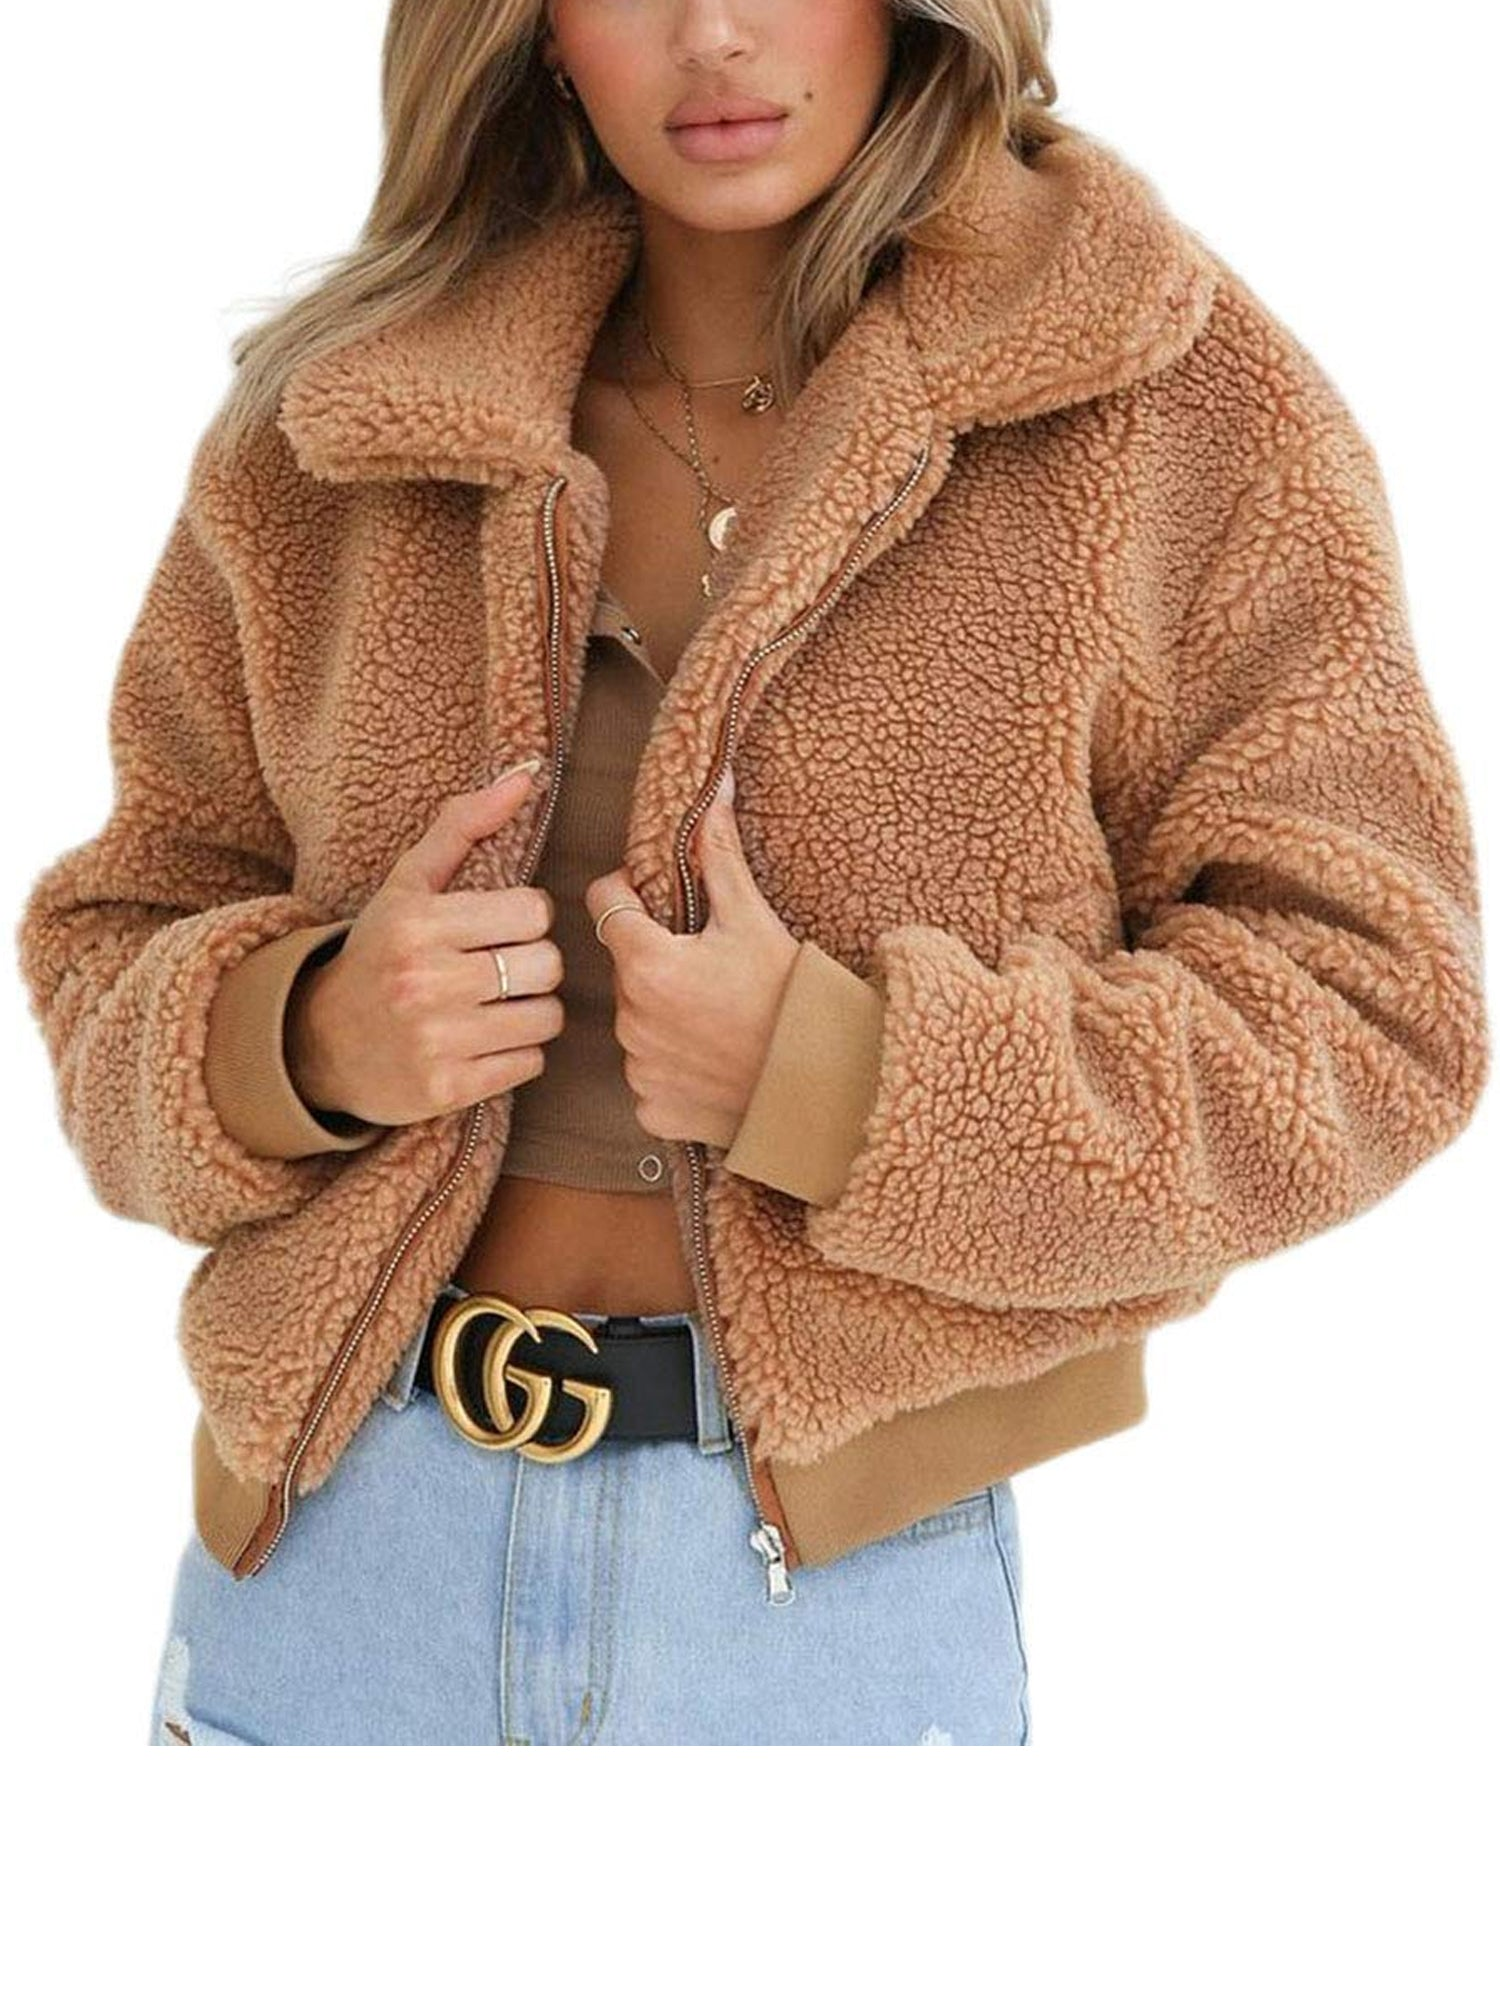 Thick Warm Teddy Bear Jacket - FLJ CORPORATIONS